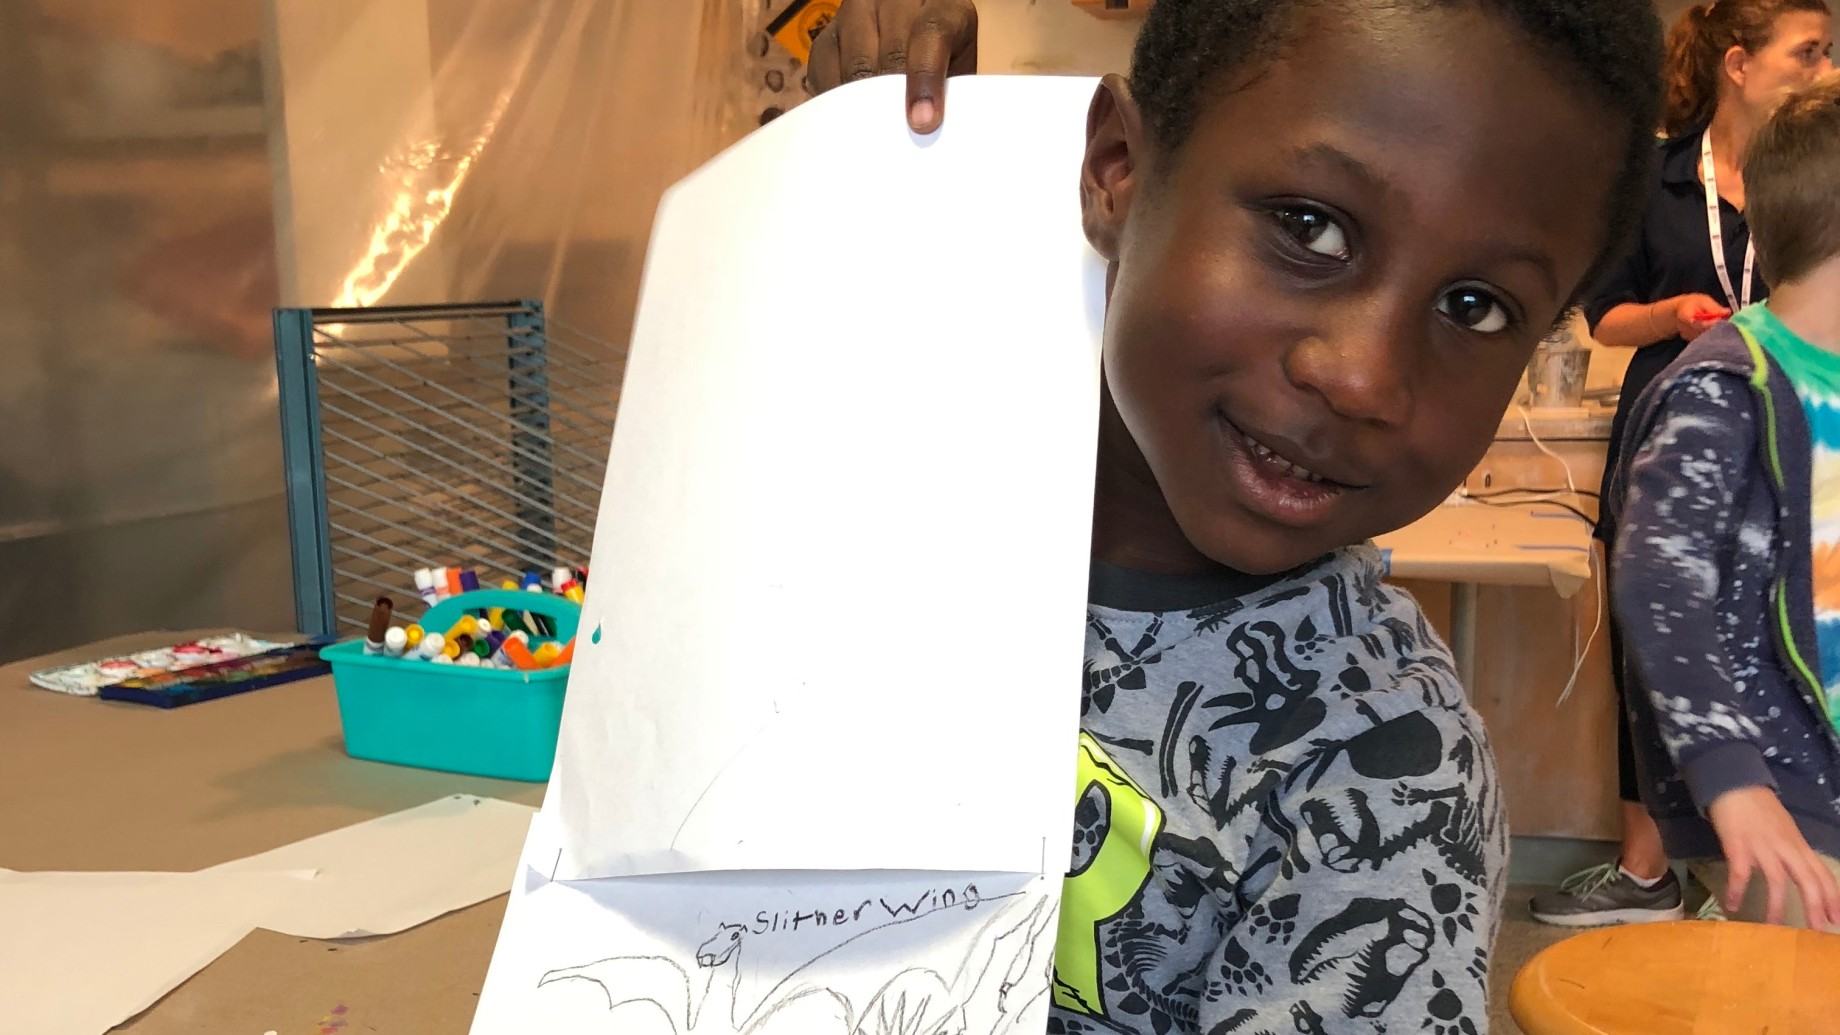 A child showing his drawing